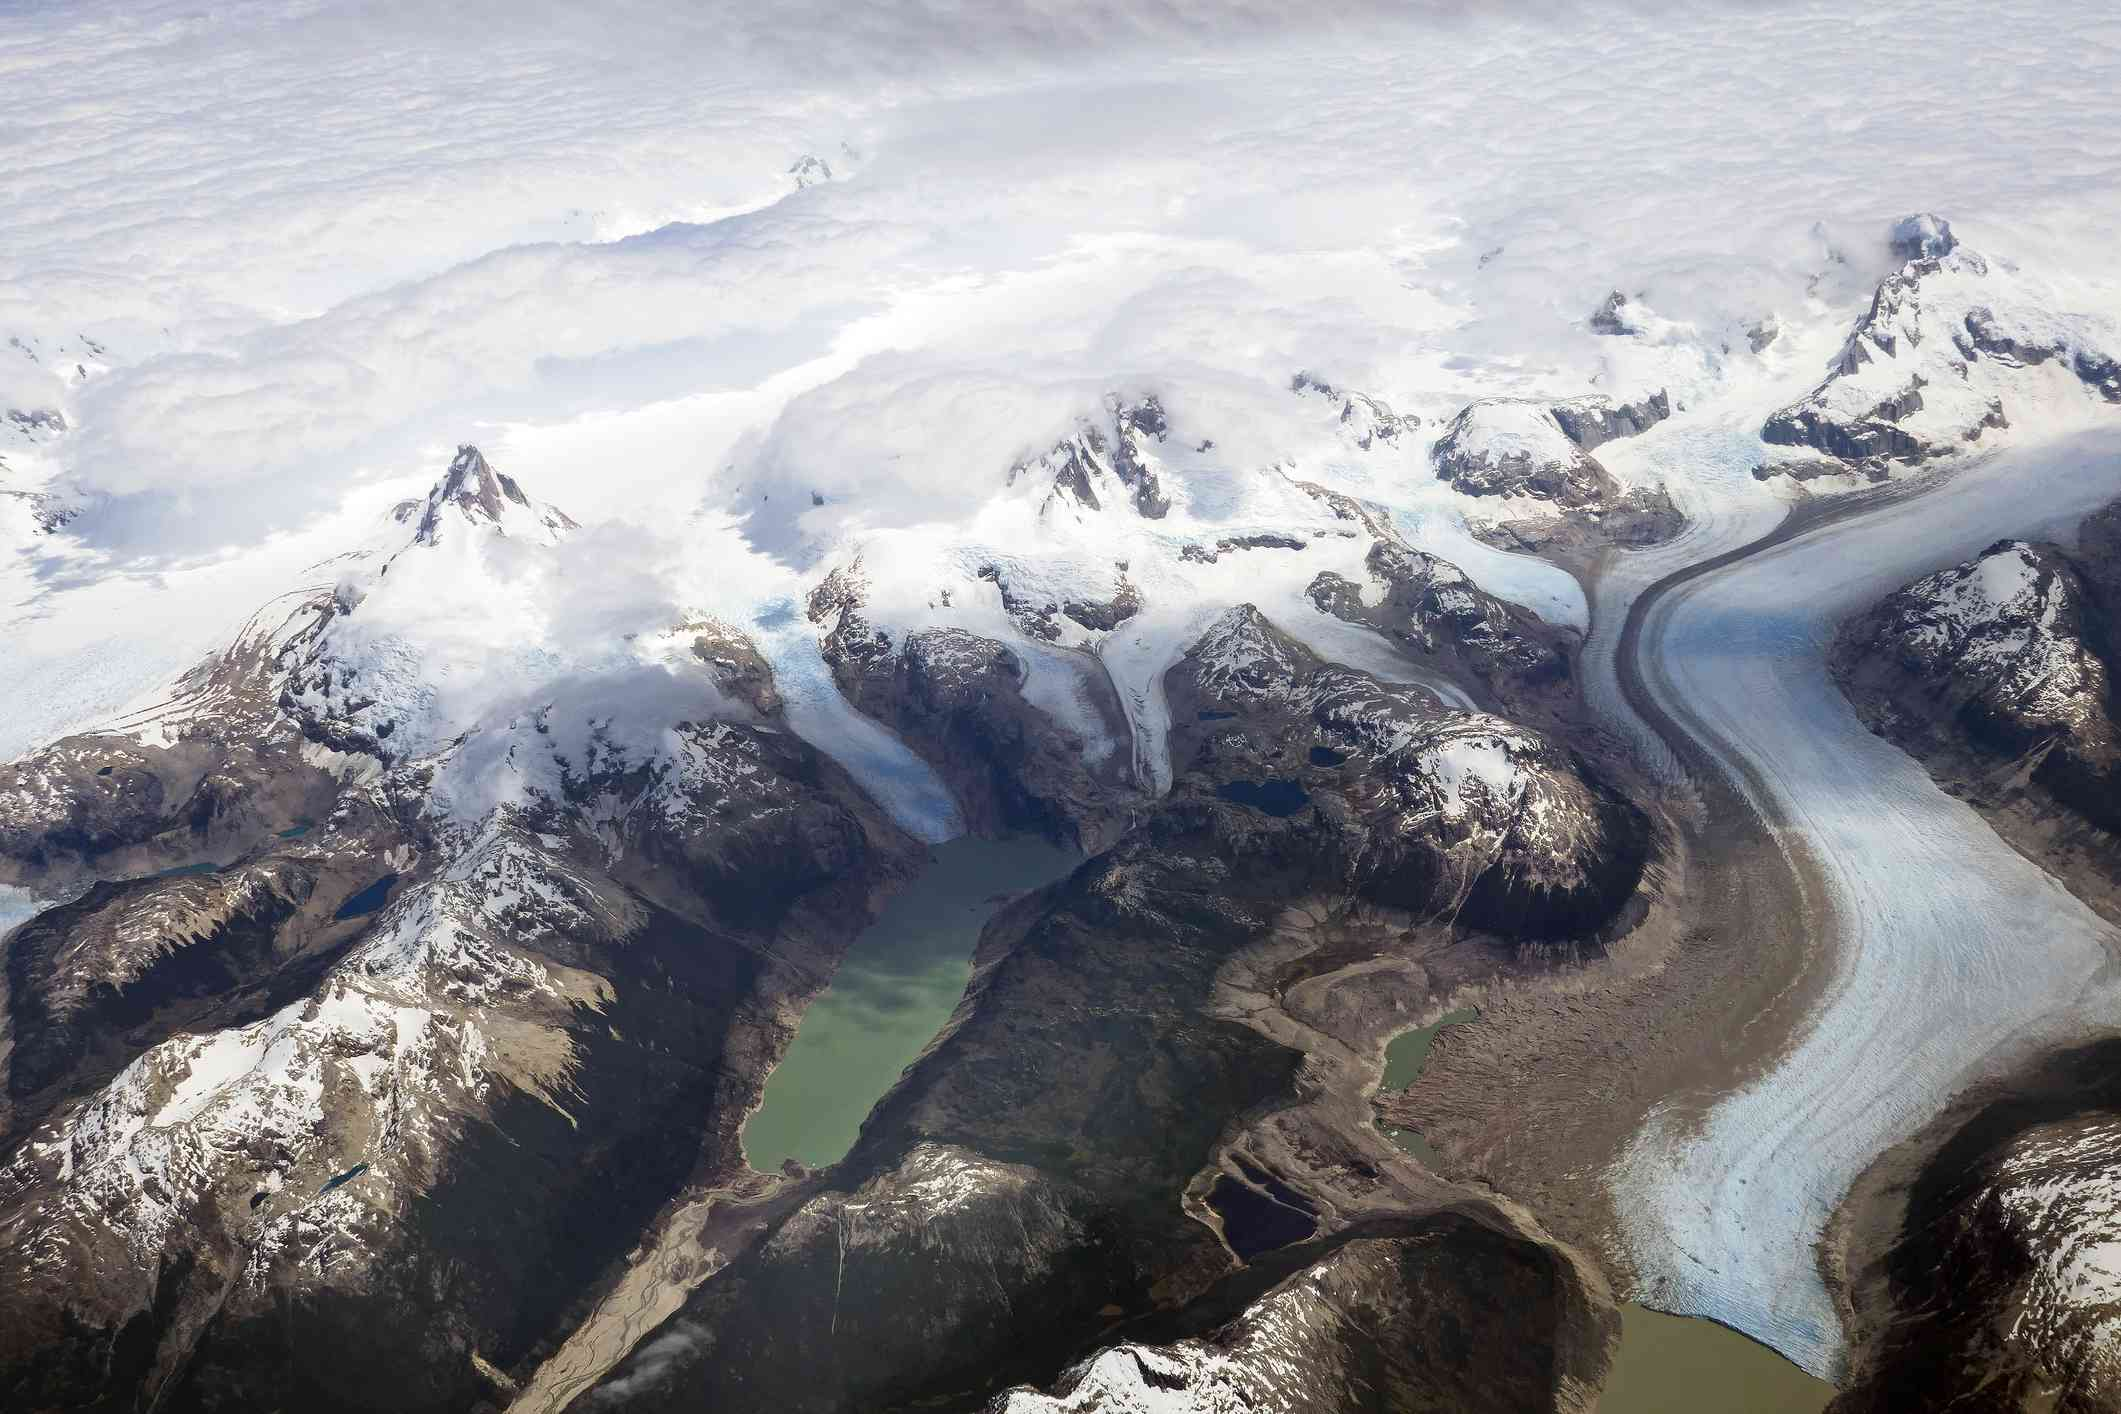 An aerial photo of a gray-green lake dammed by the arm of a large glacier